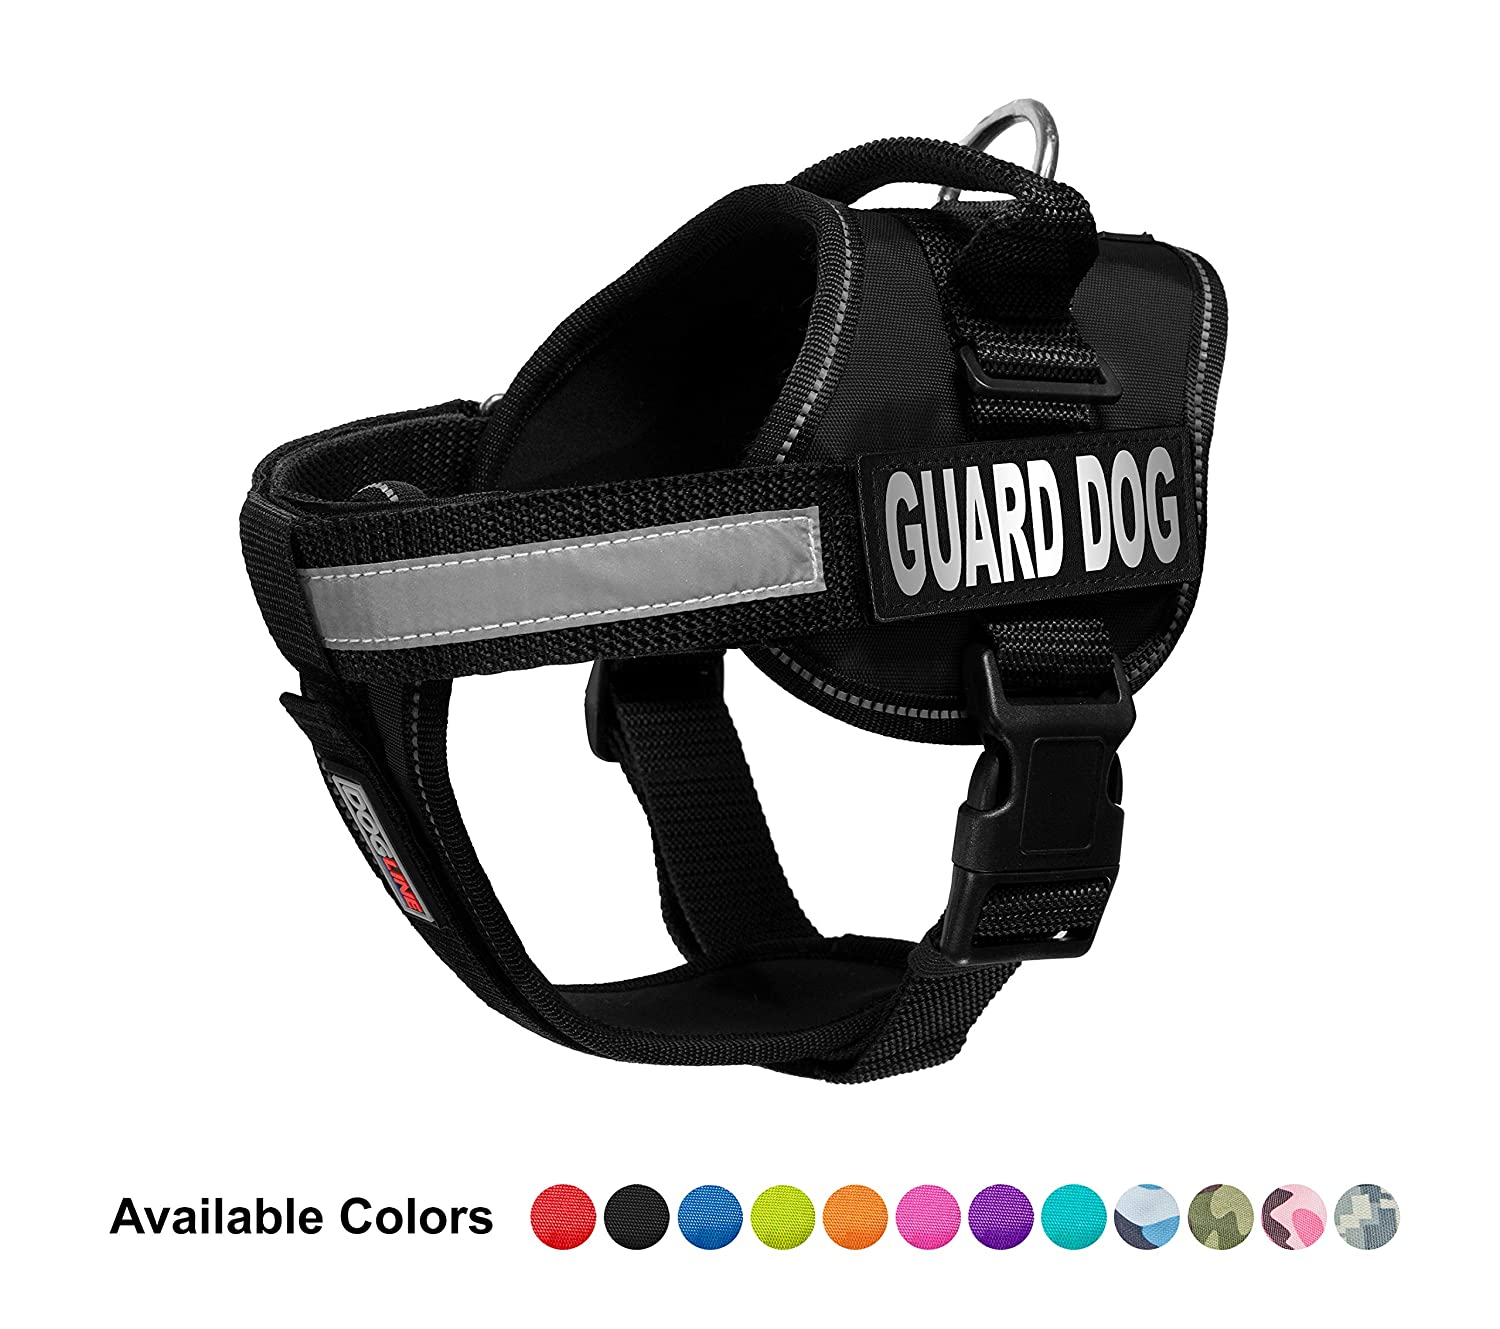 Dogline Unimax Multi-Purpose Vest Harness for Dogs and 2 Removable Guard Dog Patches, Small, Black